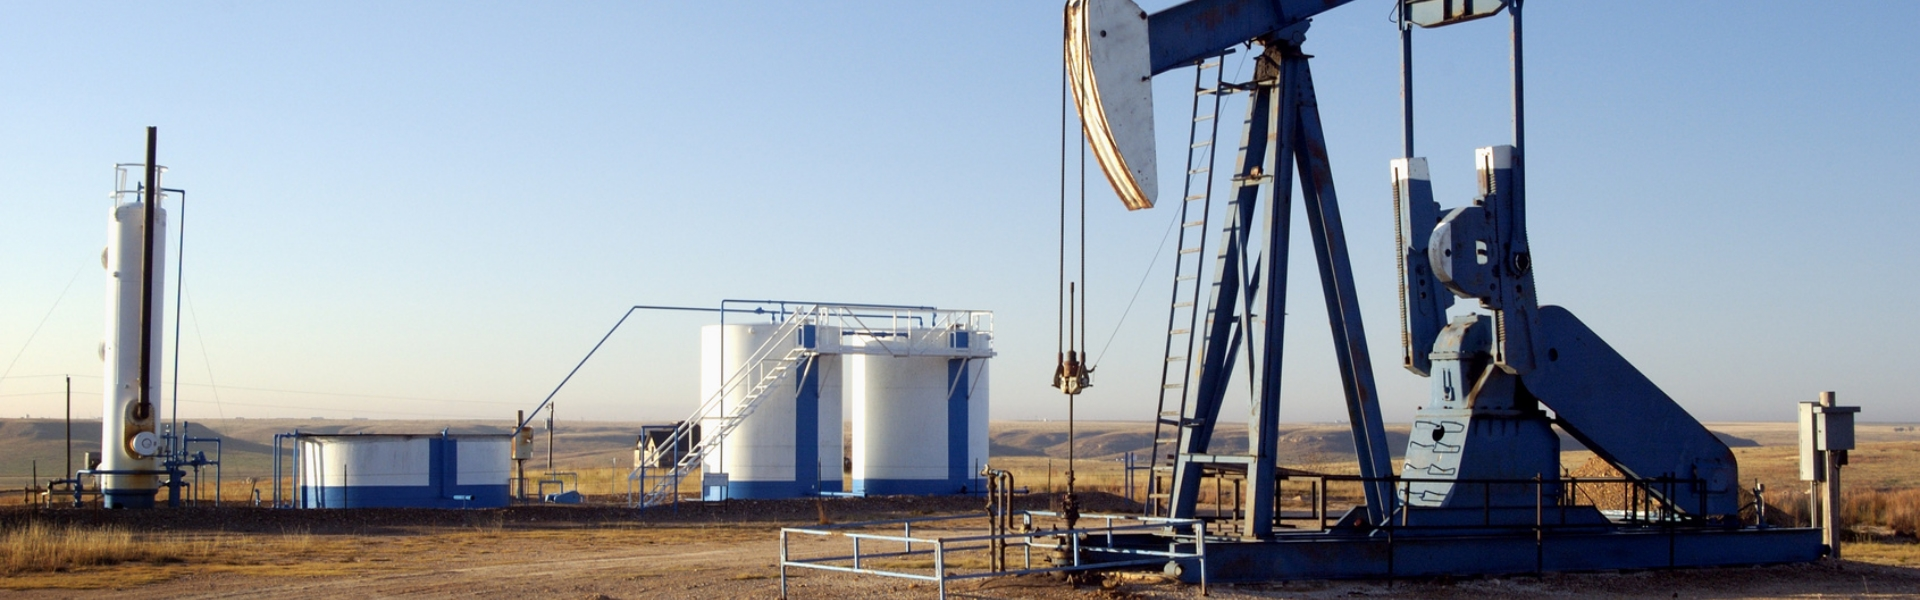 Increase Oil Production using our enhanced oil recovery technique MEOR which will increase oil production rates.